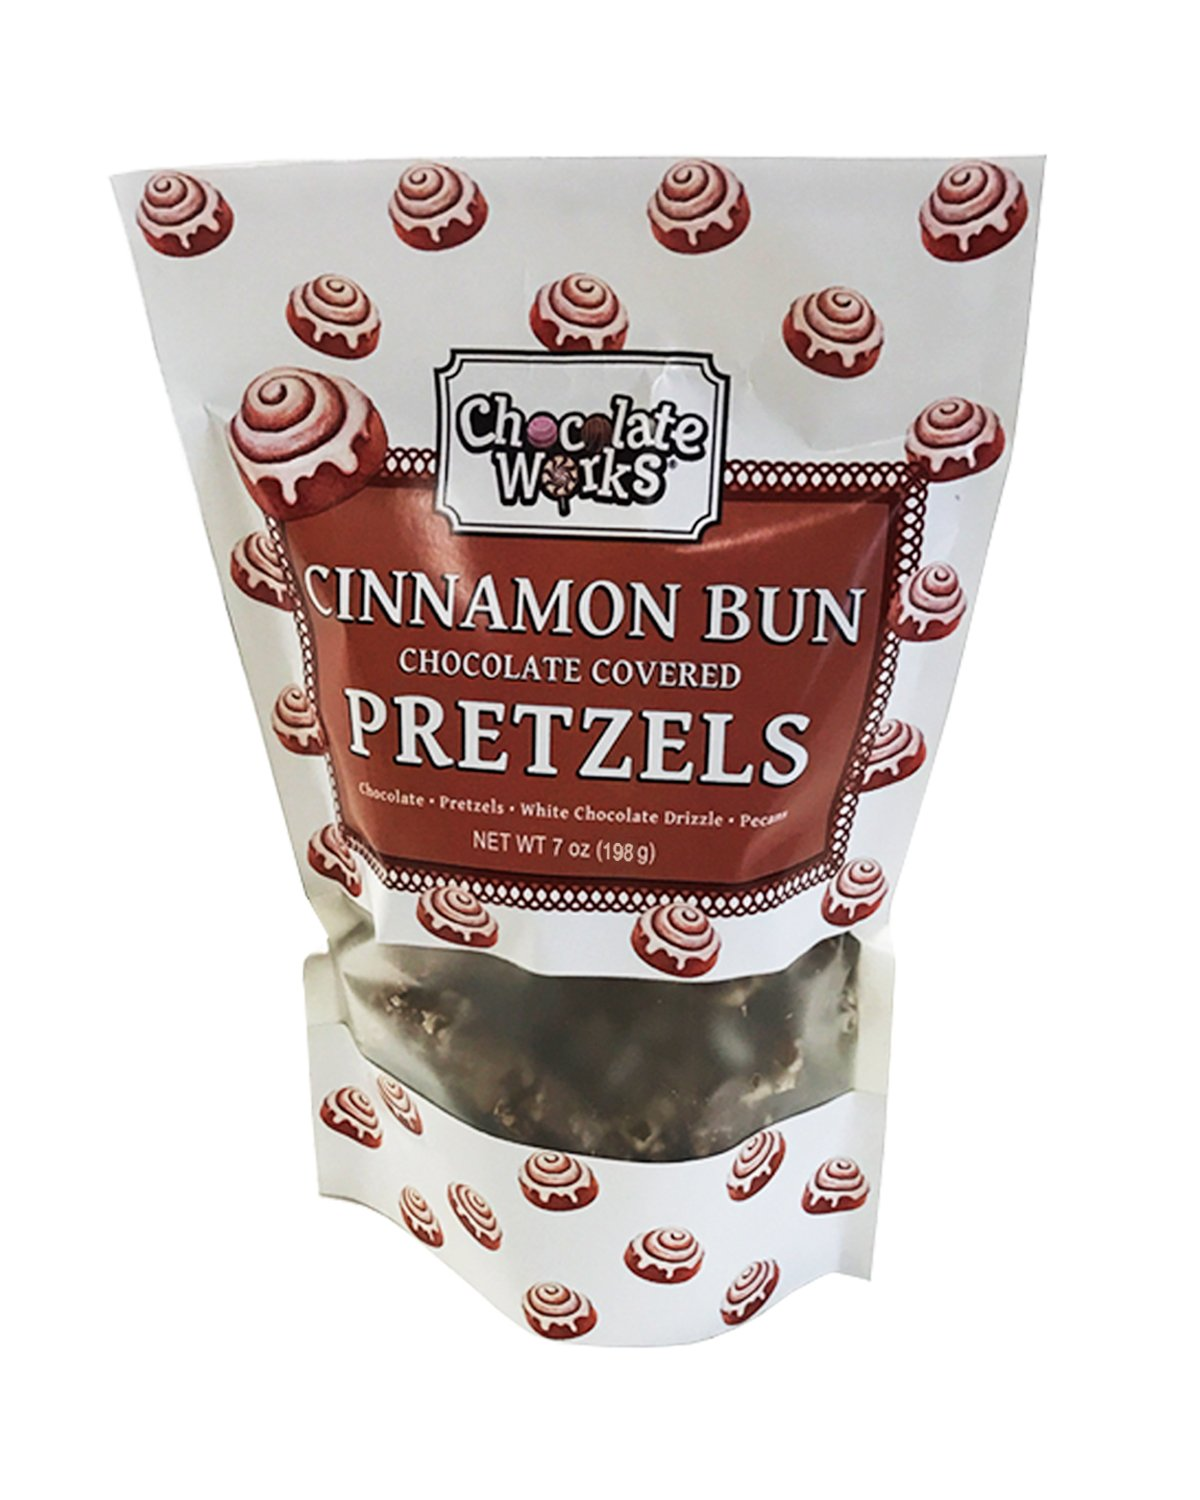 Cinnamon Bun Chocolate Covered Pretzels Pouches, 12 Pack by Chocolate Works